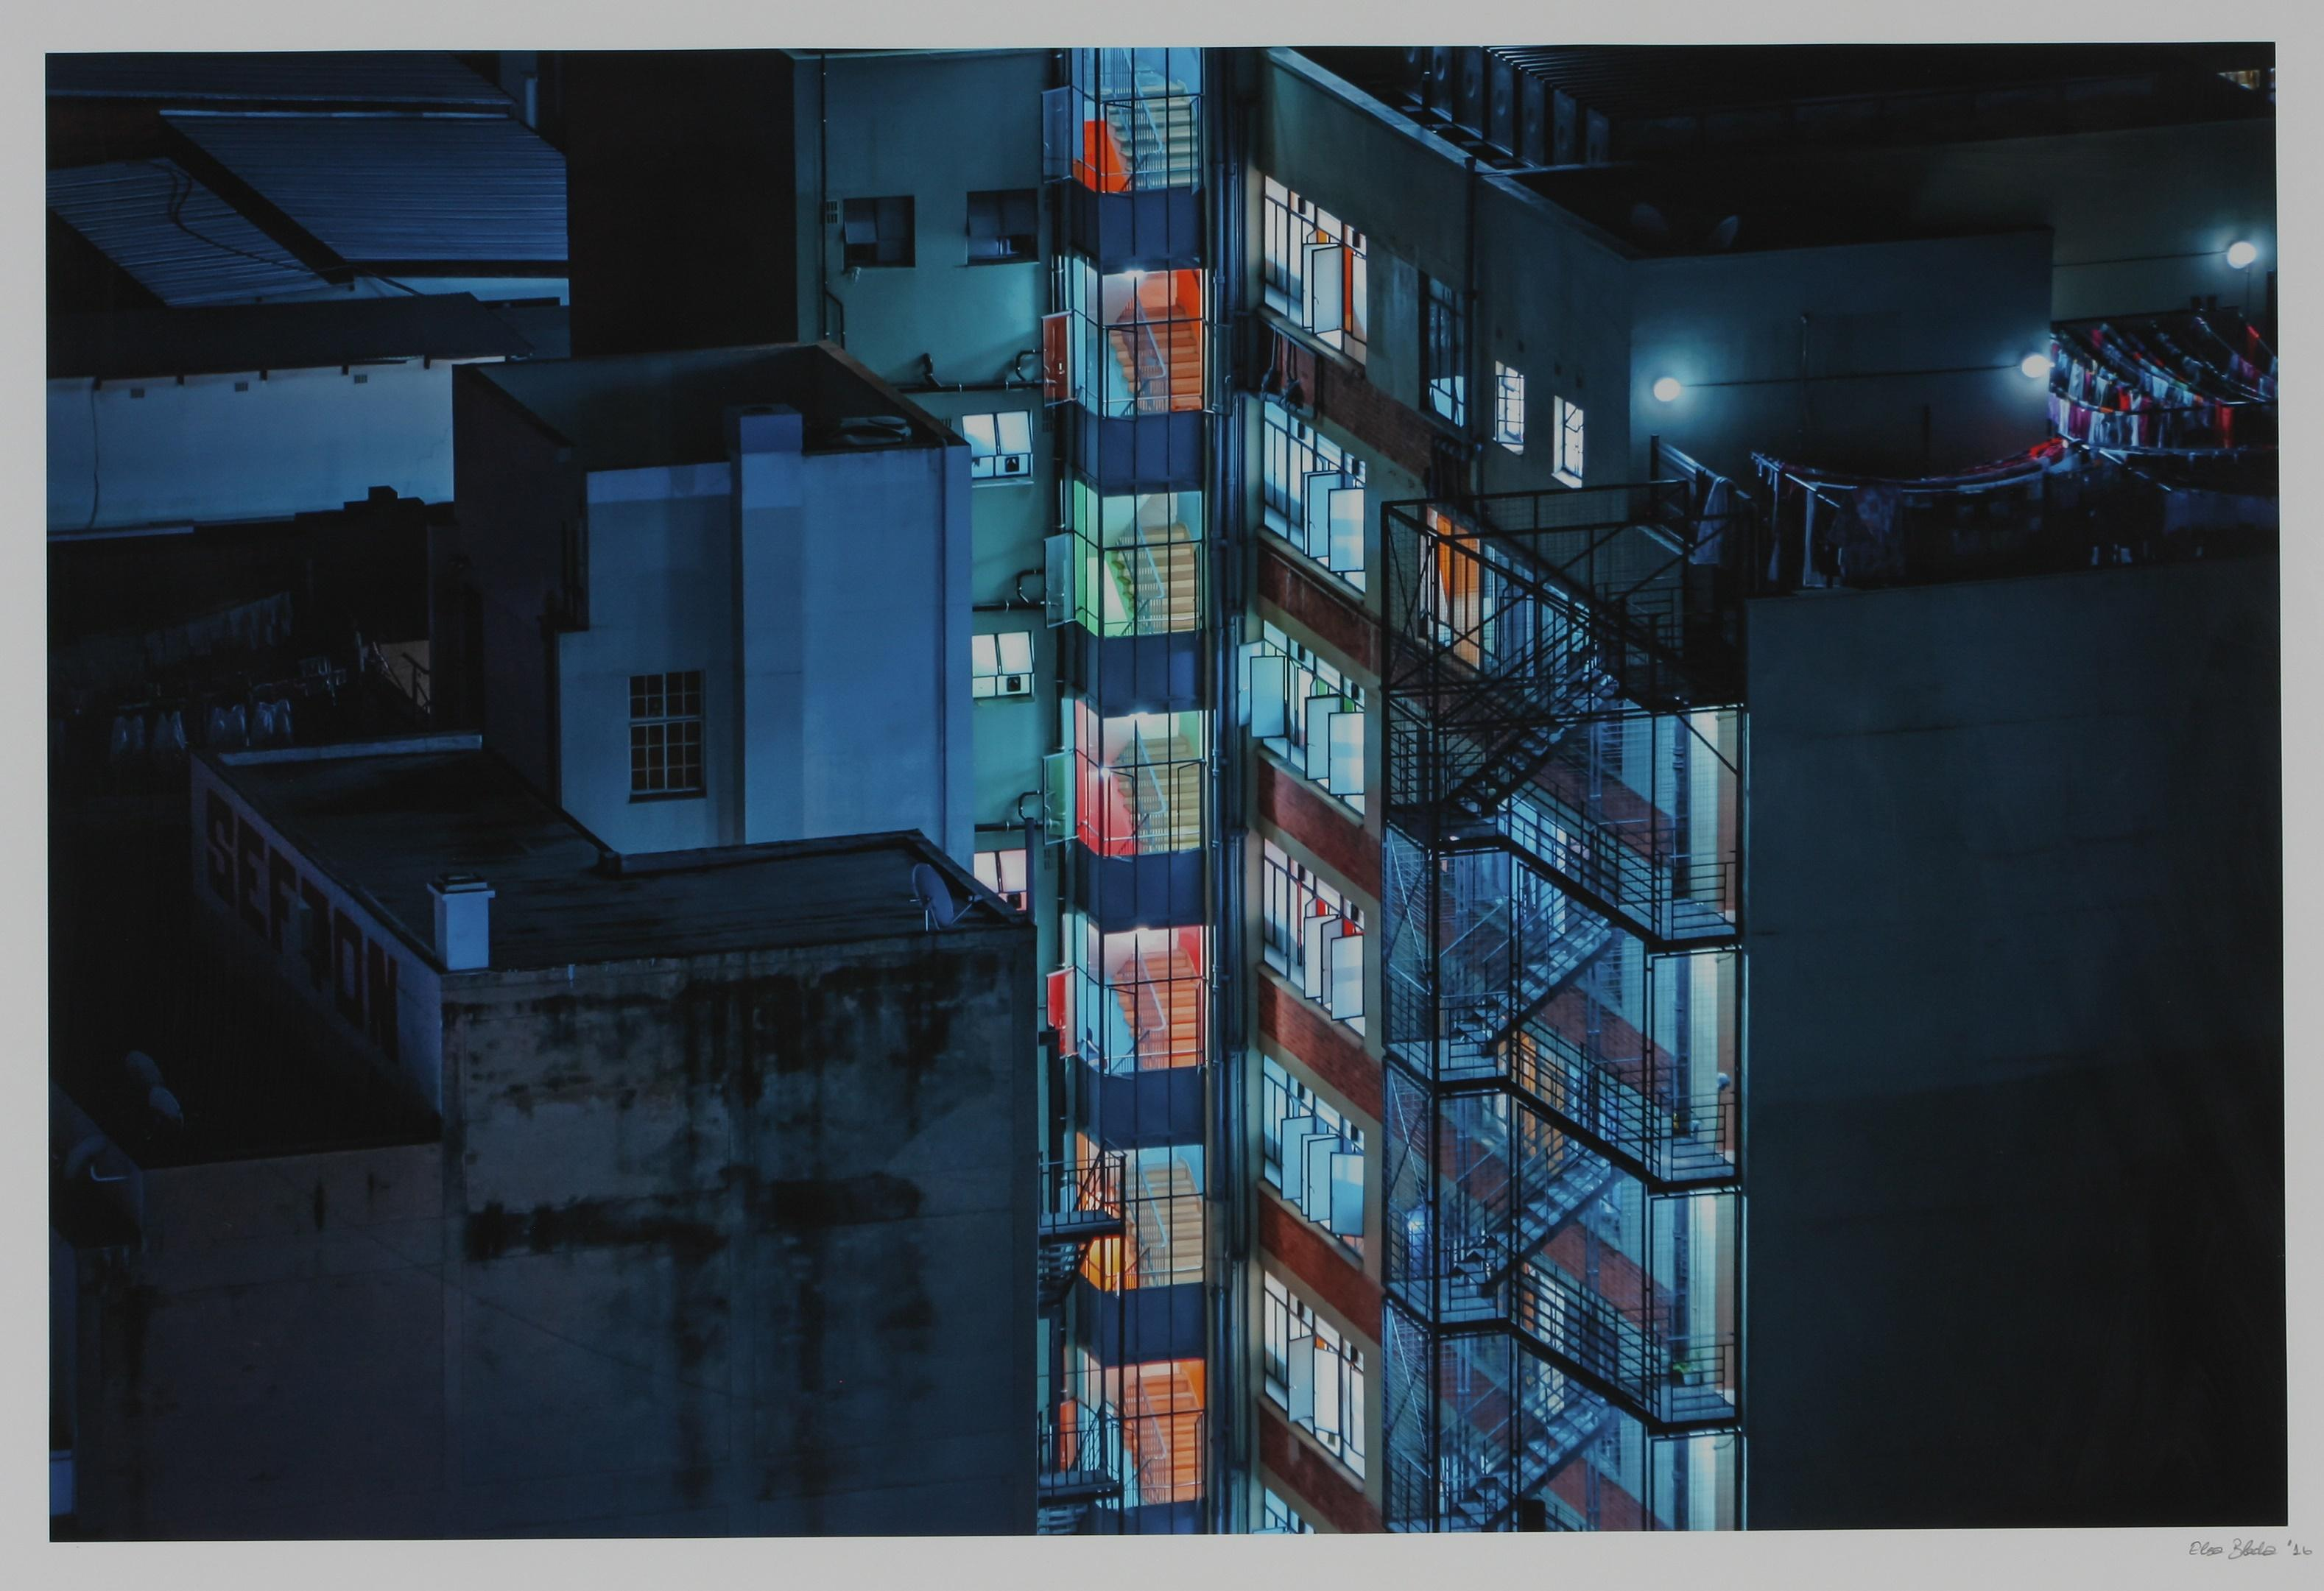 Elsa Bleda (France 1988-) Hillbrow (from the Nightscapes: Johannesburg series), 2016